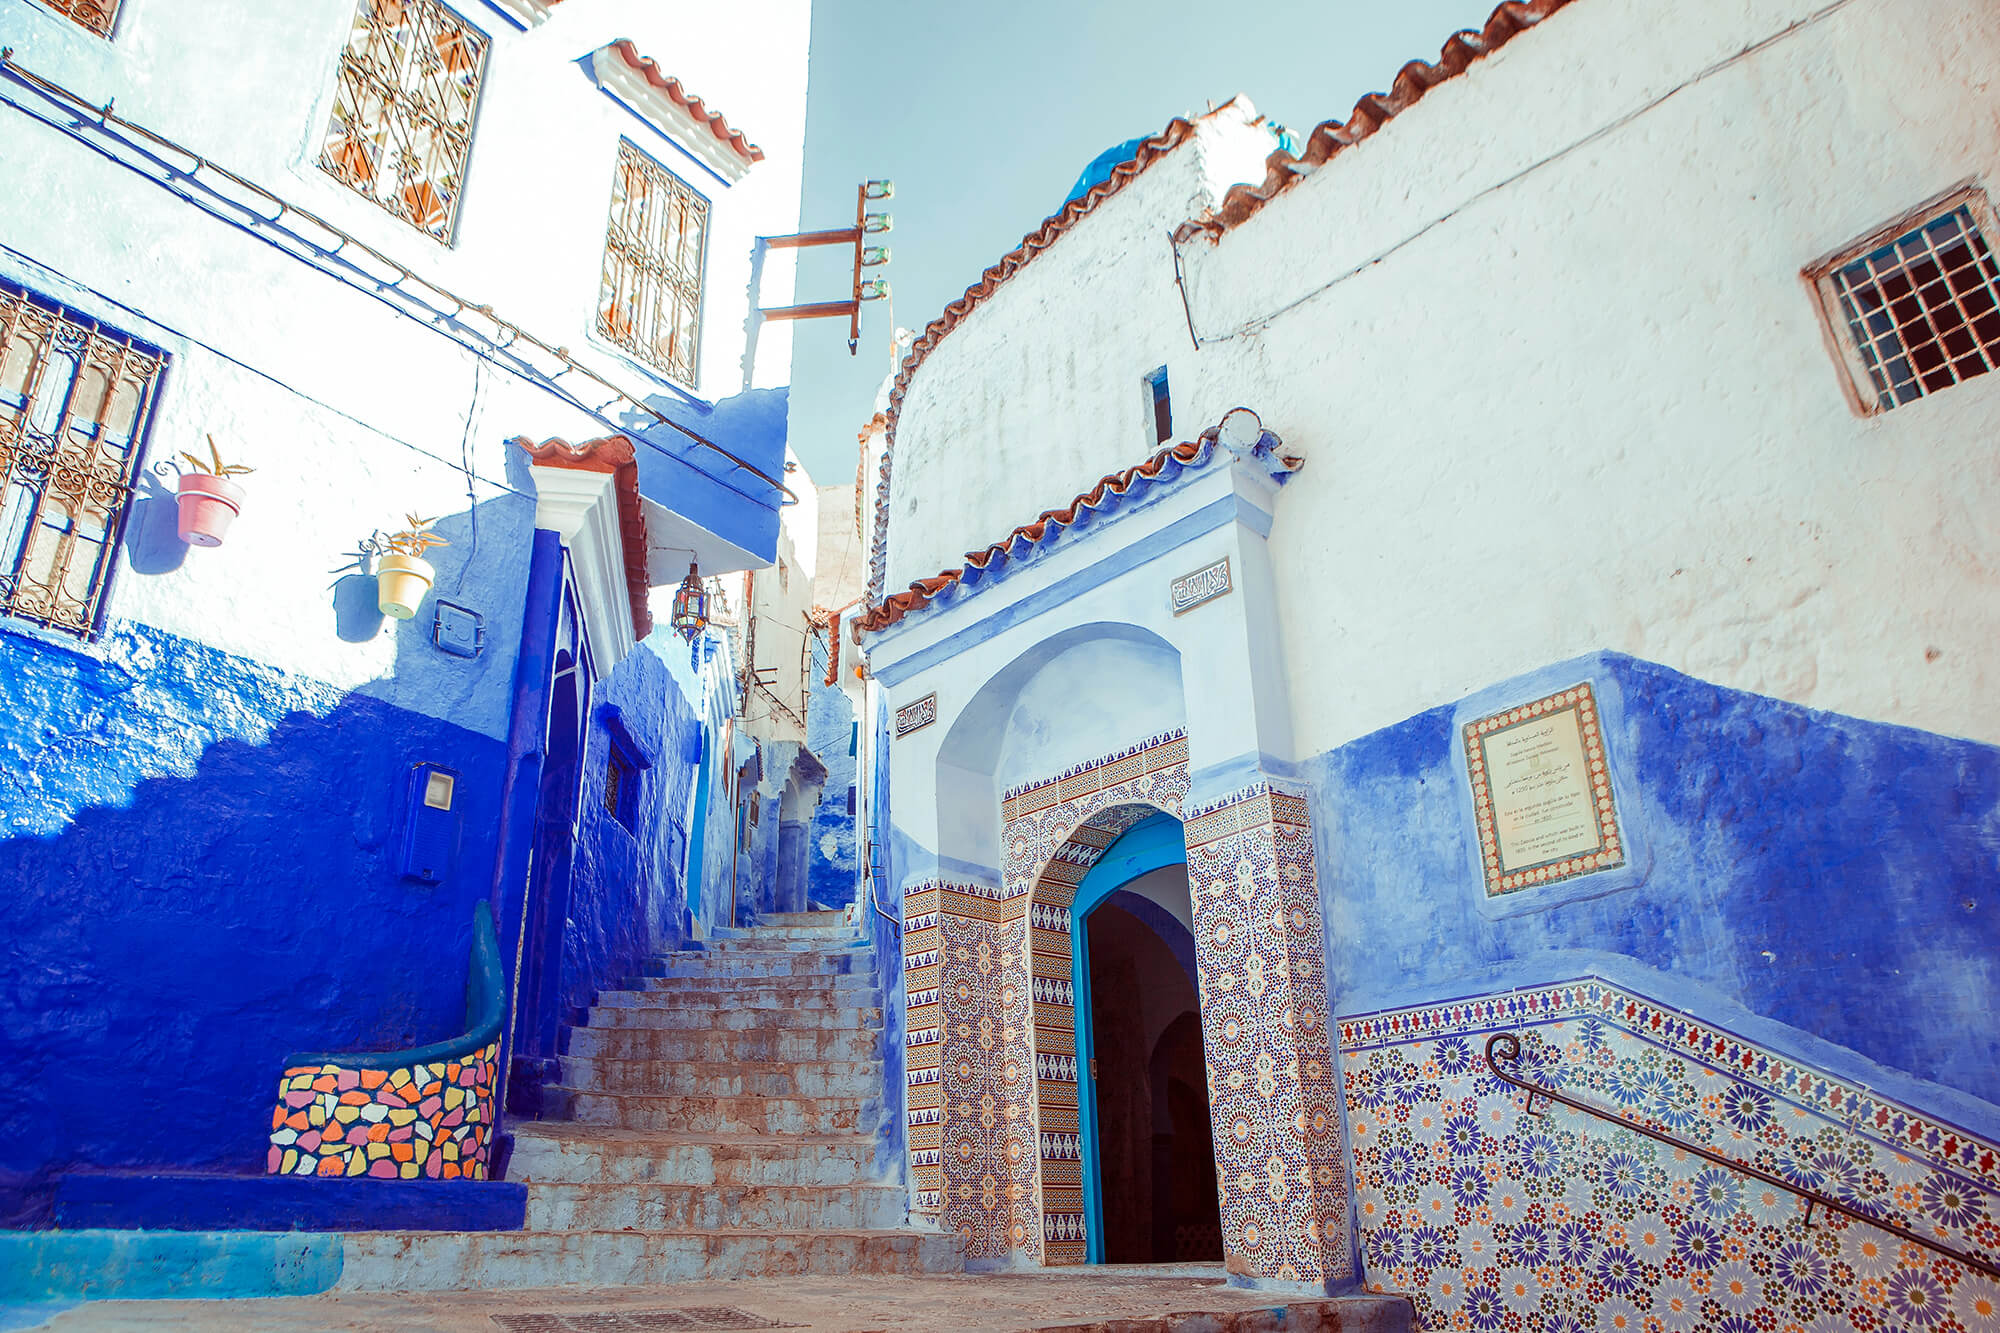 Sahara Desert Tour - Sightseeing in and around Chefchaouen - A great city for photography lovers